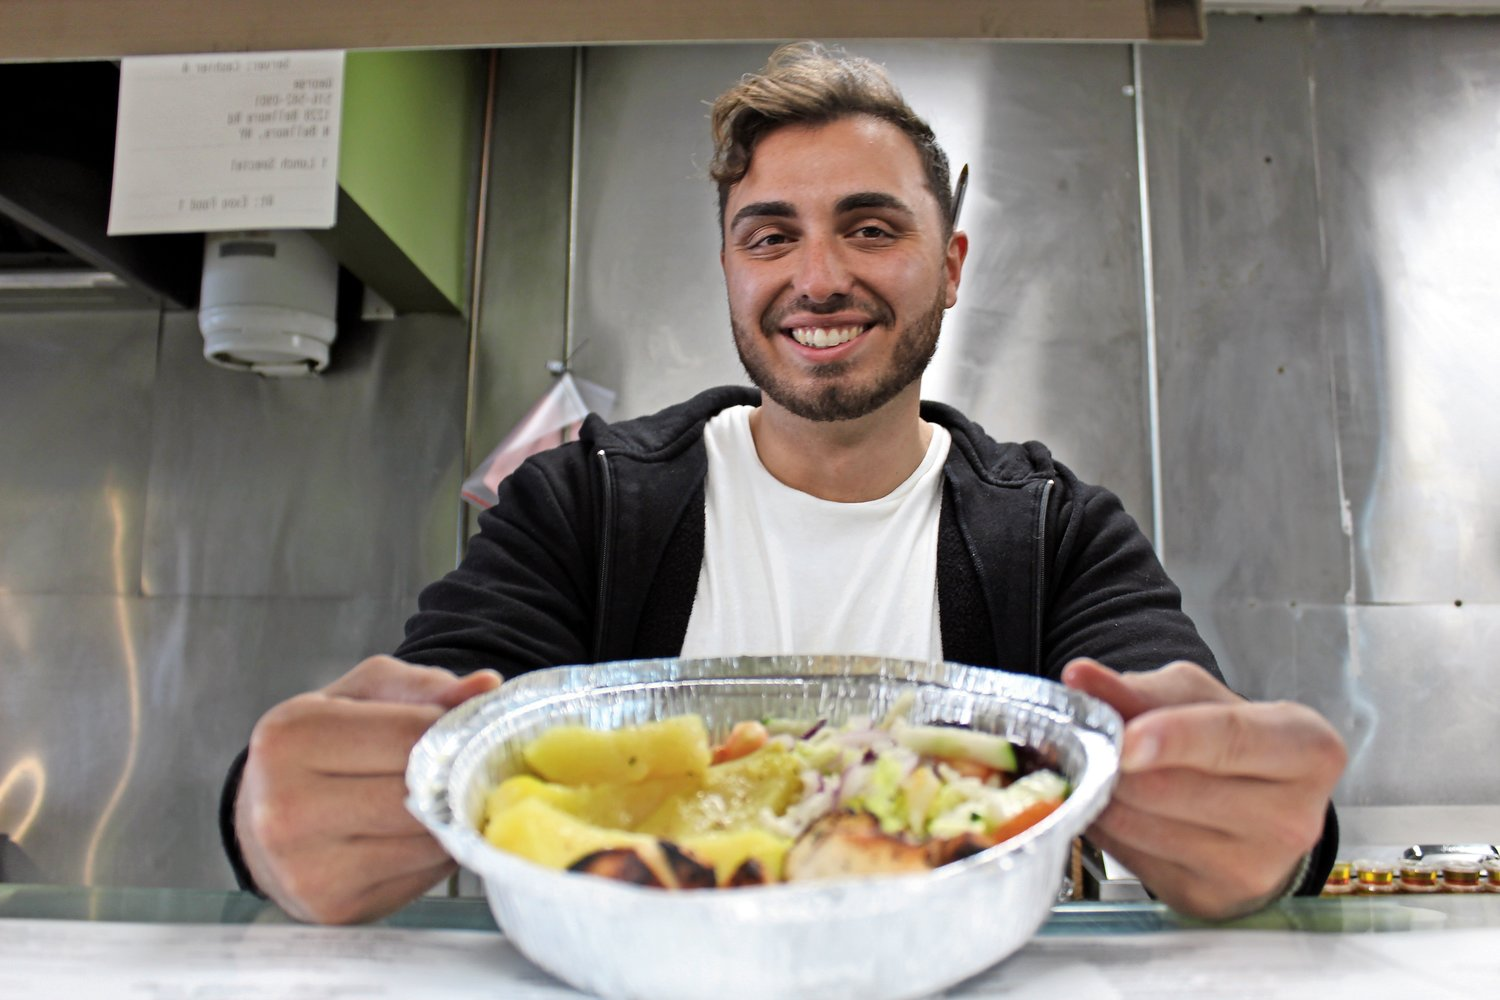 Avli's owner, Gianni Torto, has been giving out free meals to those in need during the coronavirus pandemic.